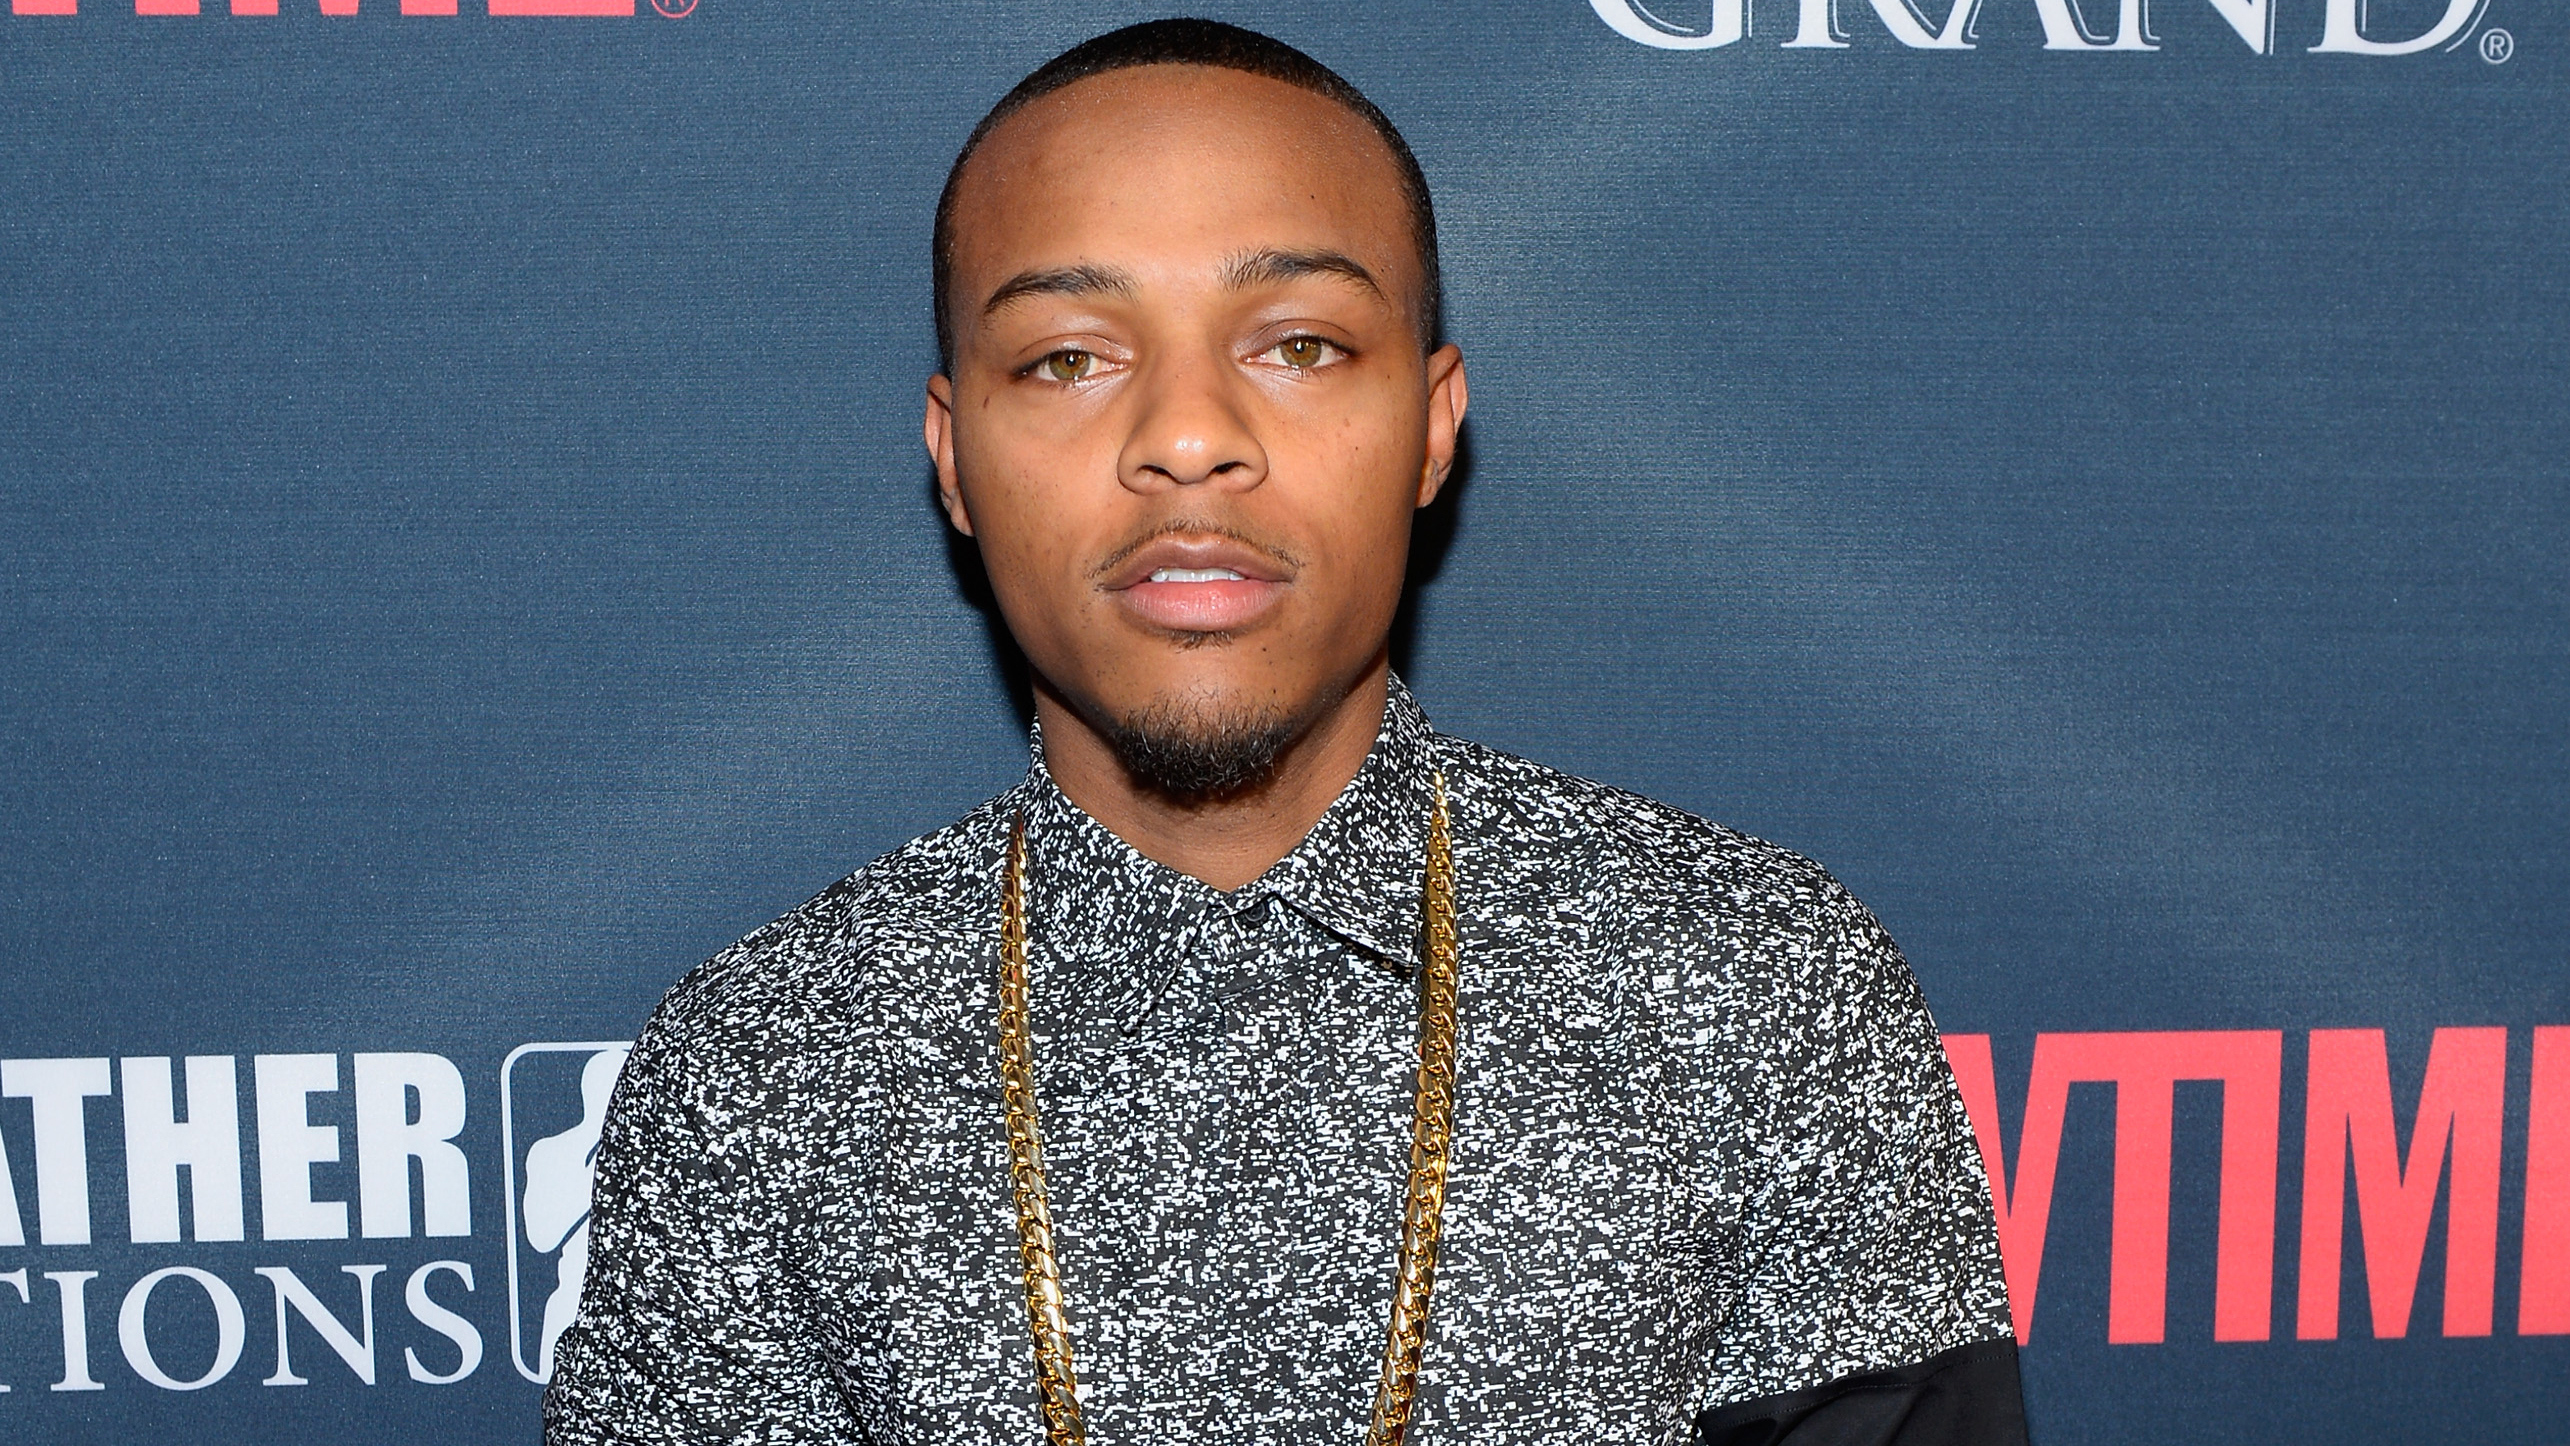 Bow Wow apologizes after crowded Houston club backlash